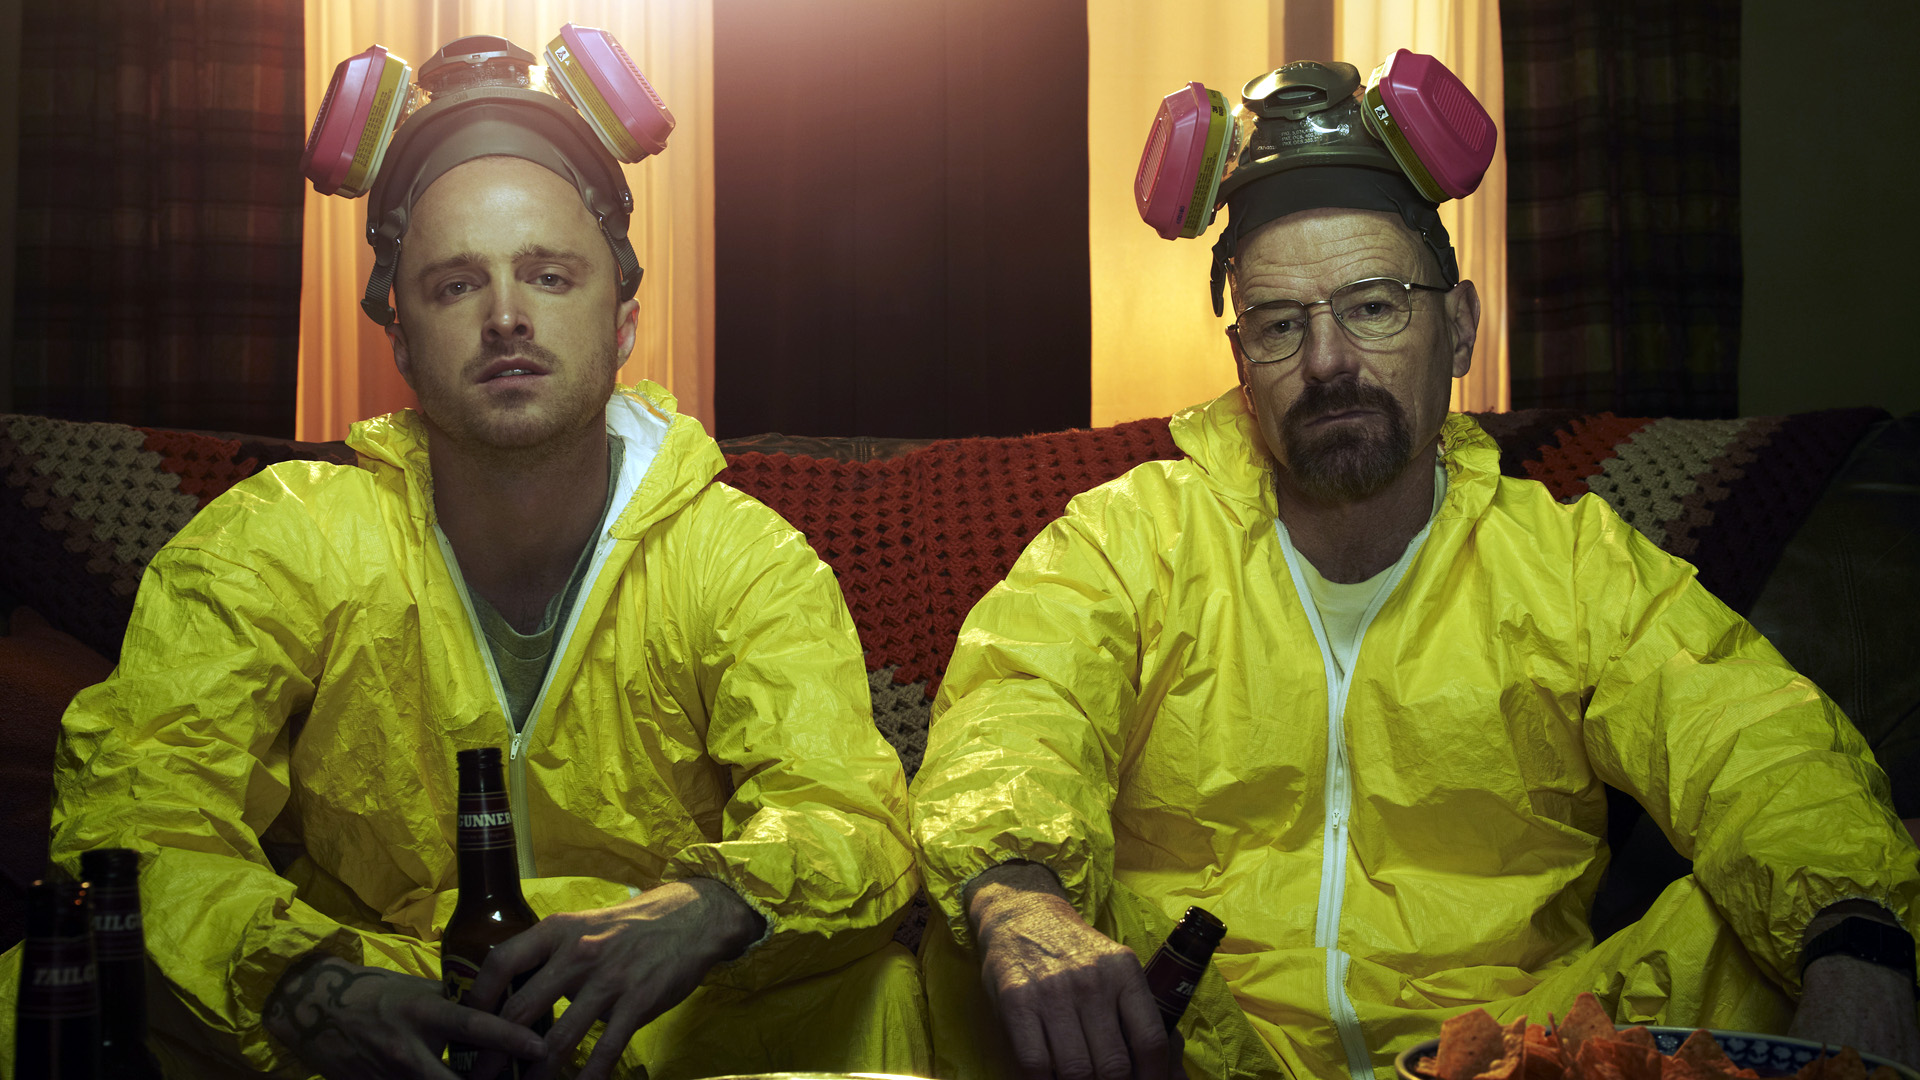 Breaking-bad-wallpaper-wp360185